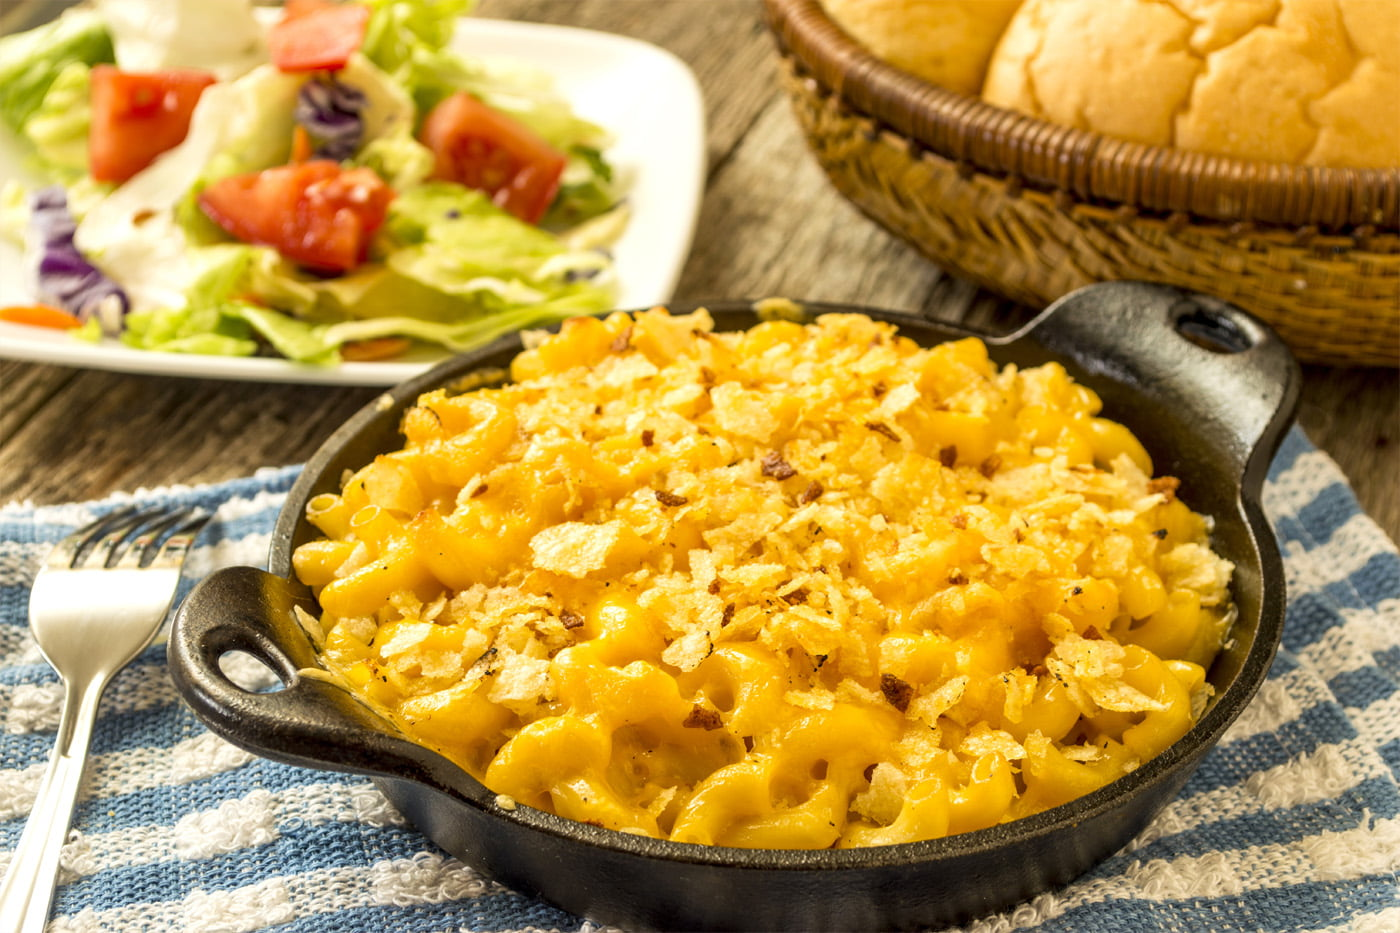 Delicious New Year's Eve Mac and Cheese